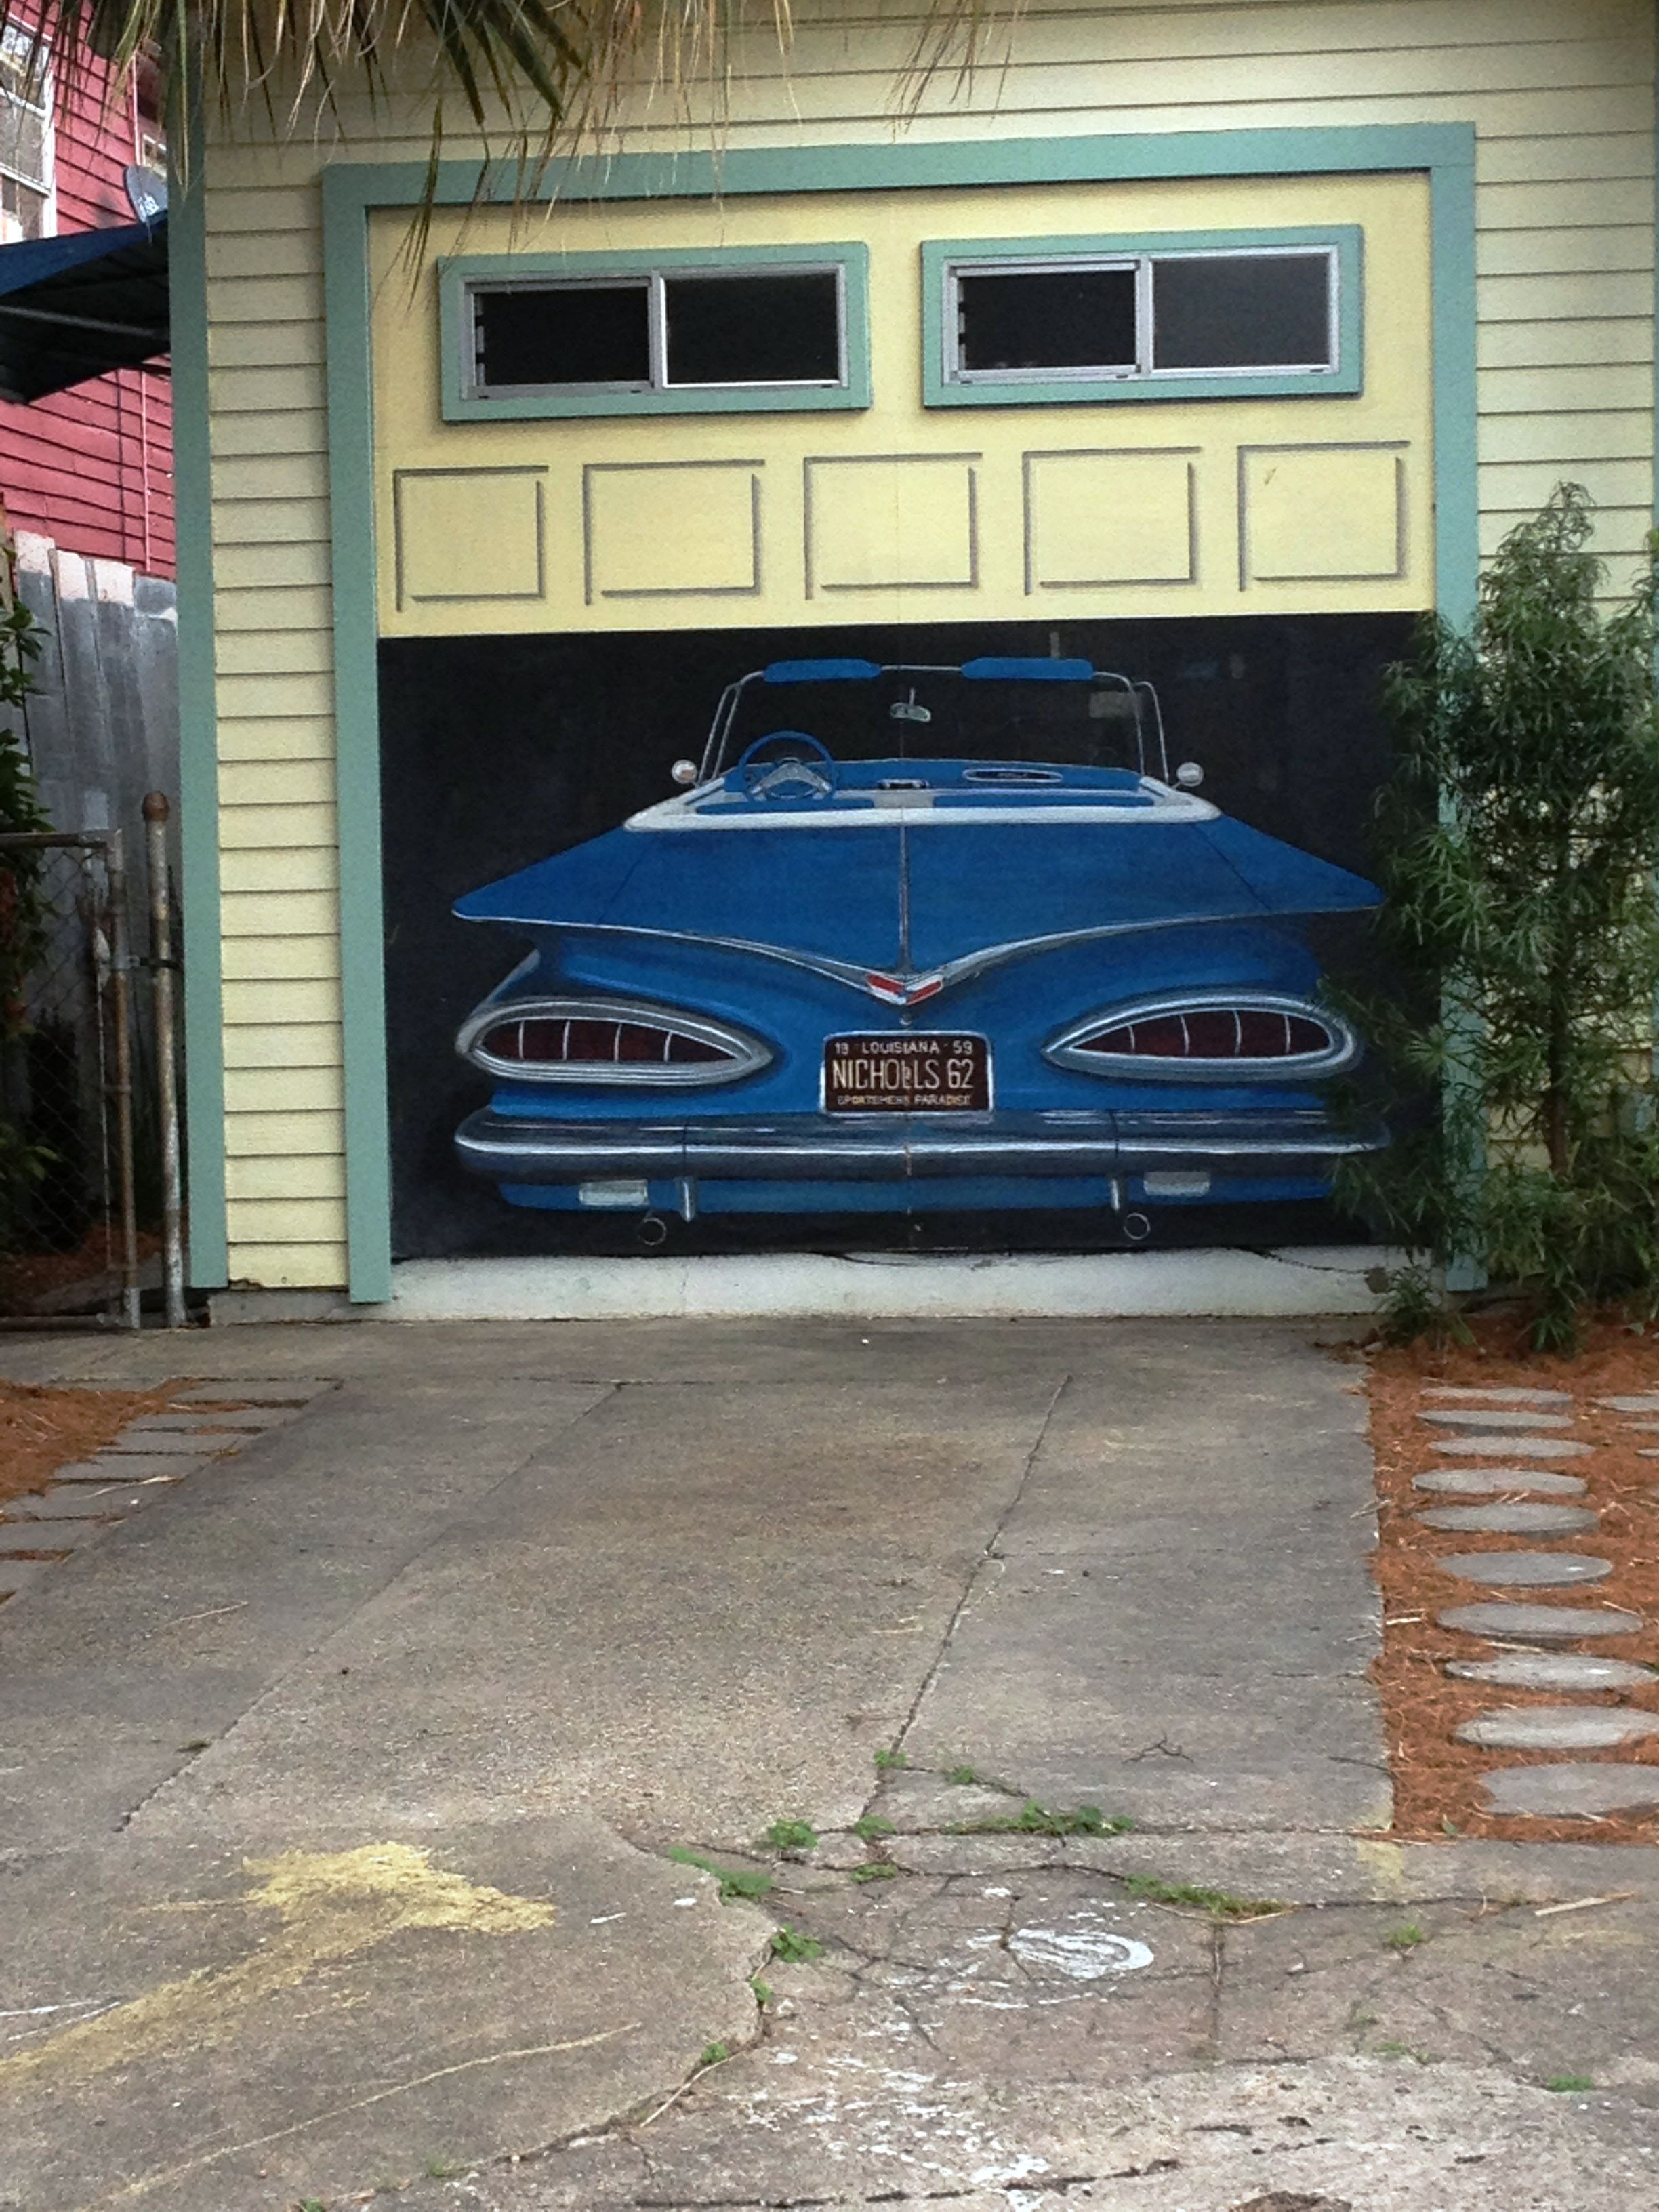 Charmant New Orleans (thatu0027s A Painted Garage Door). Donu0027t Know Whatu0027s Inside   A  U002759 Chevy Maybe.